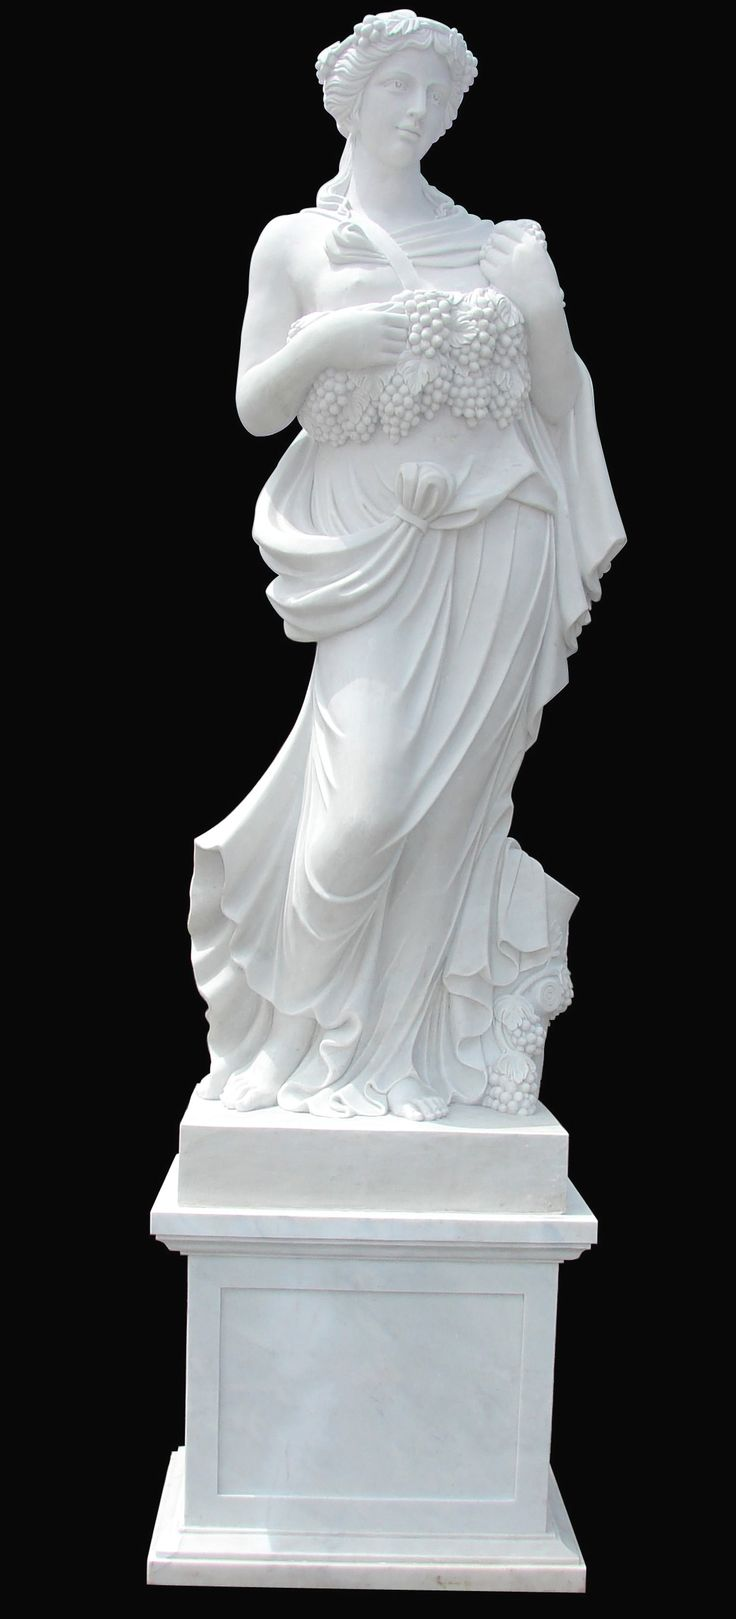 Marble Statues | White Marble Statue Of A Woman Holding Grapes In Her  Hands. This. Garden StatuesGarden SculpturesStatue ...